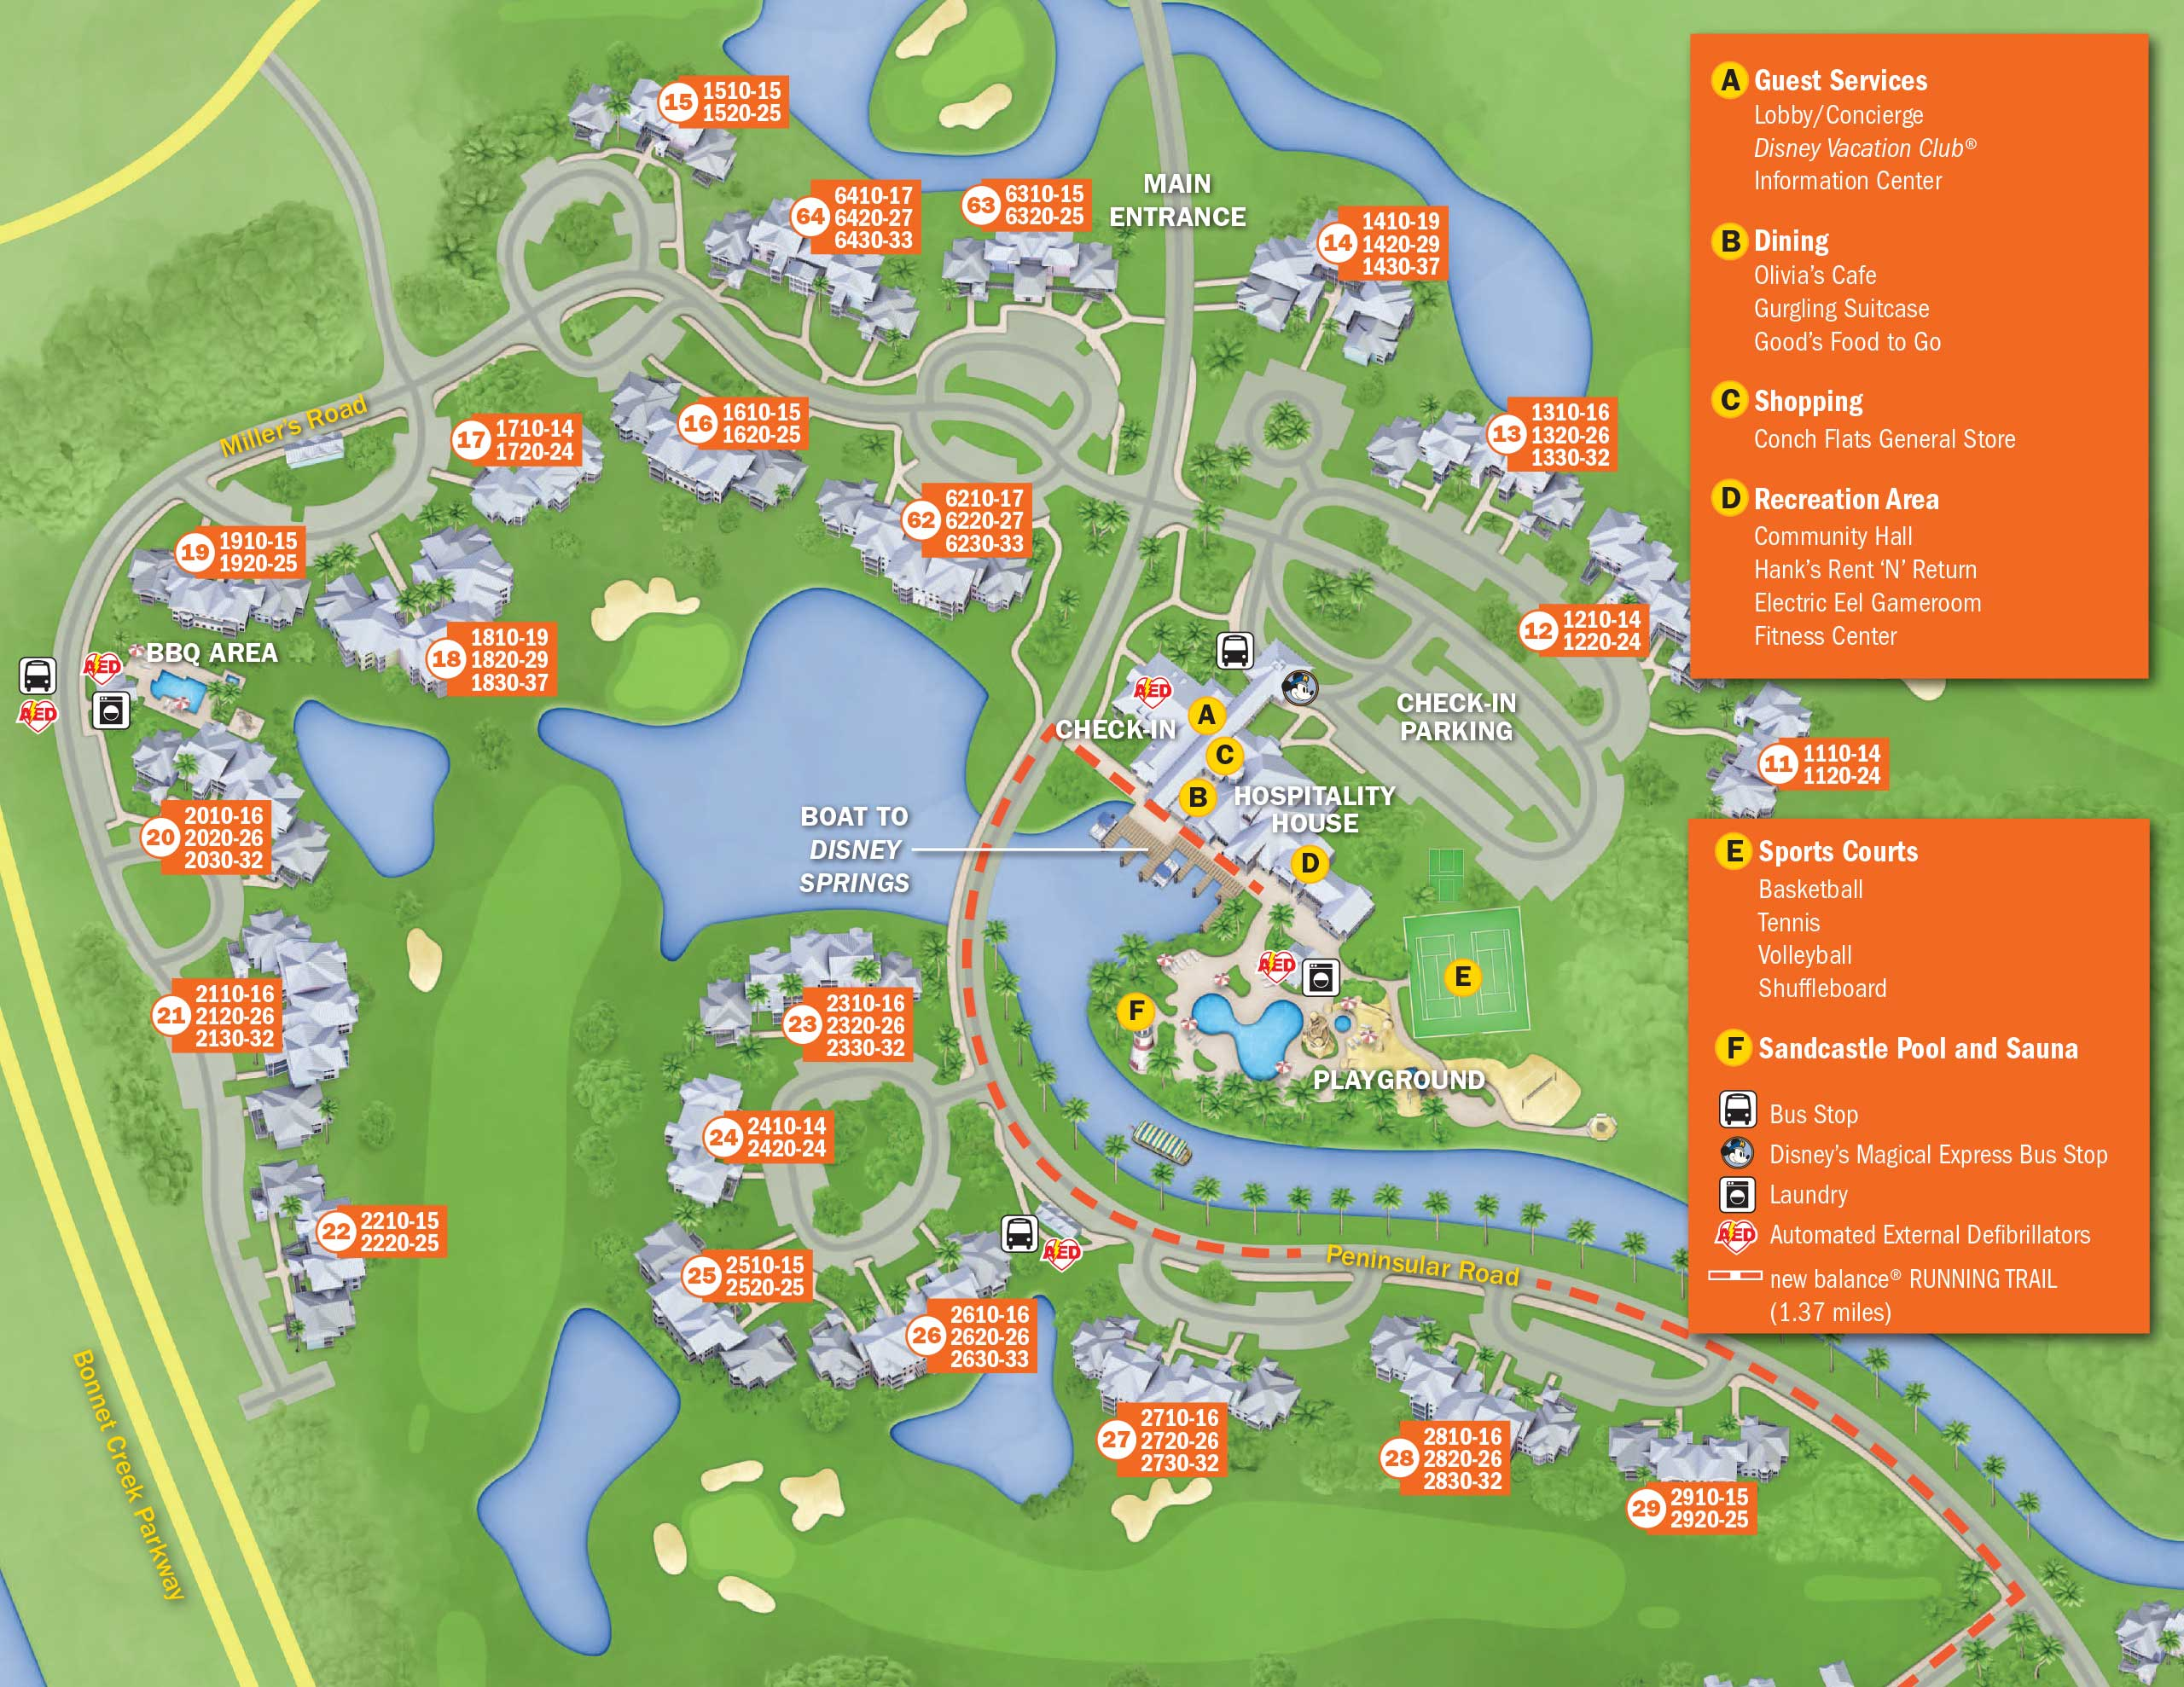 Disney World Map Resort Locations Gallery Diagram